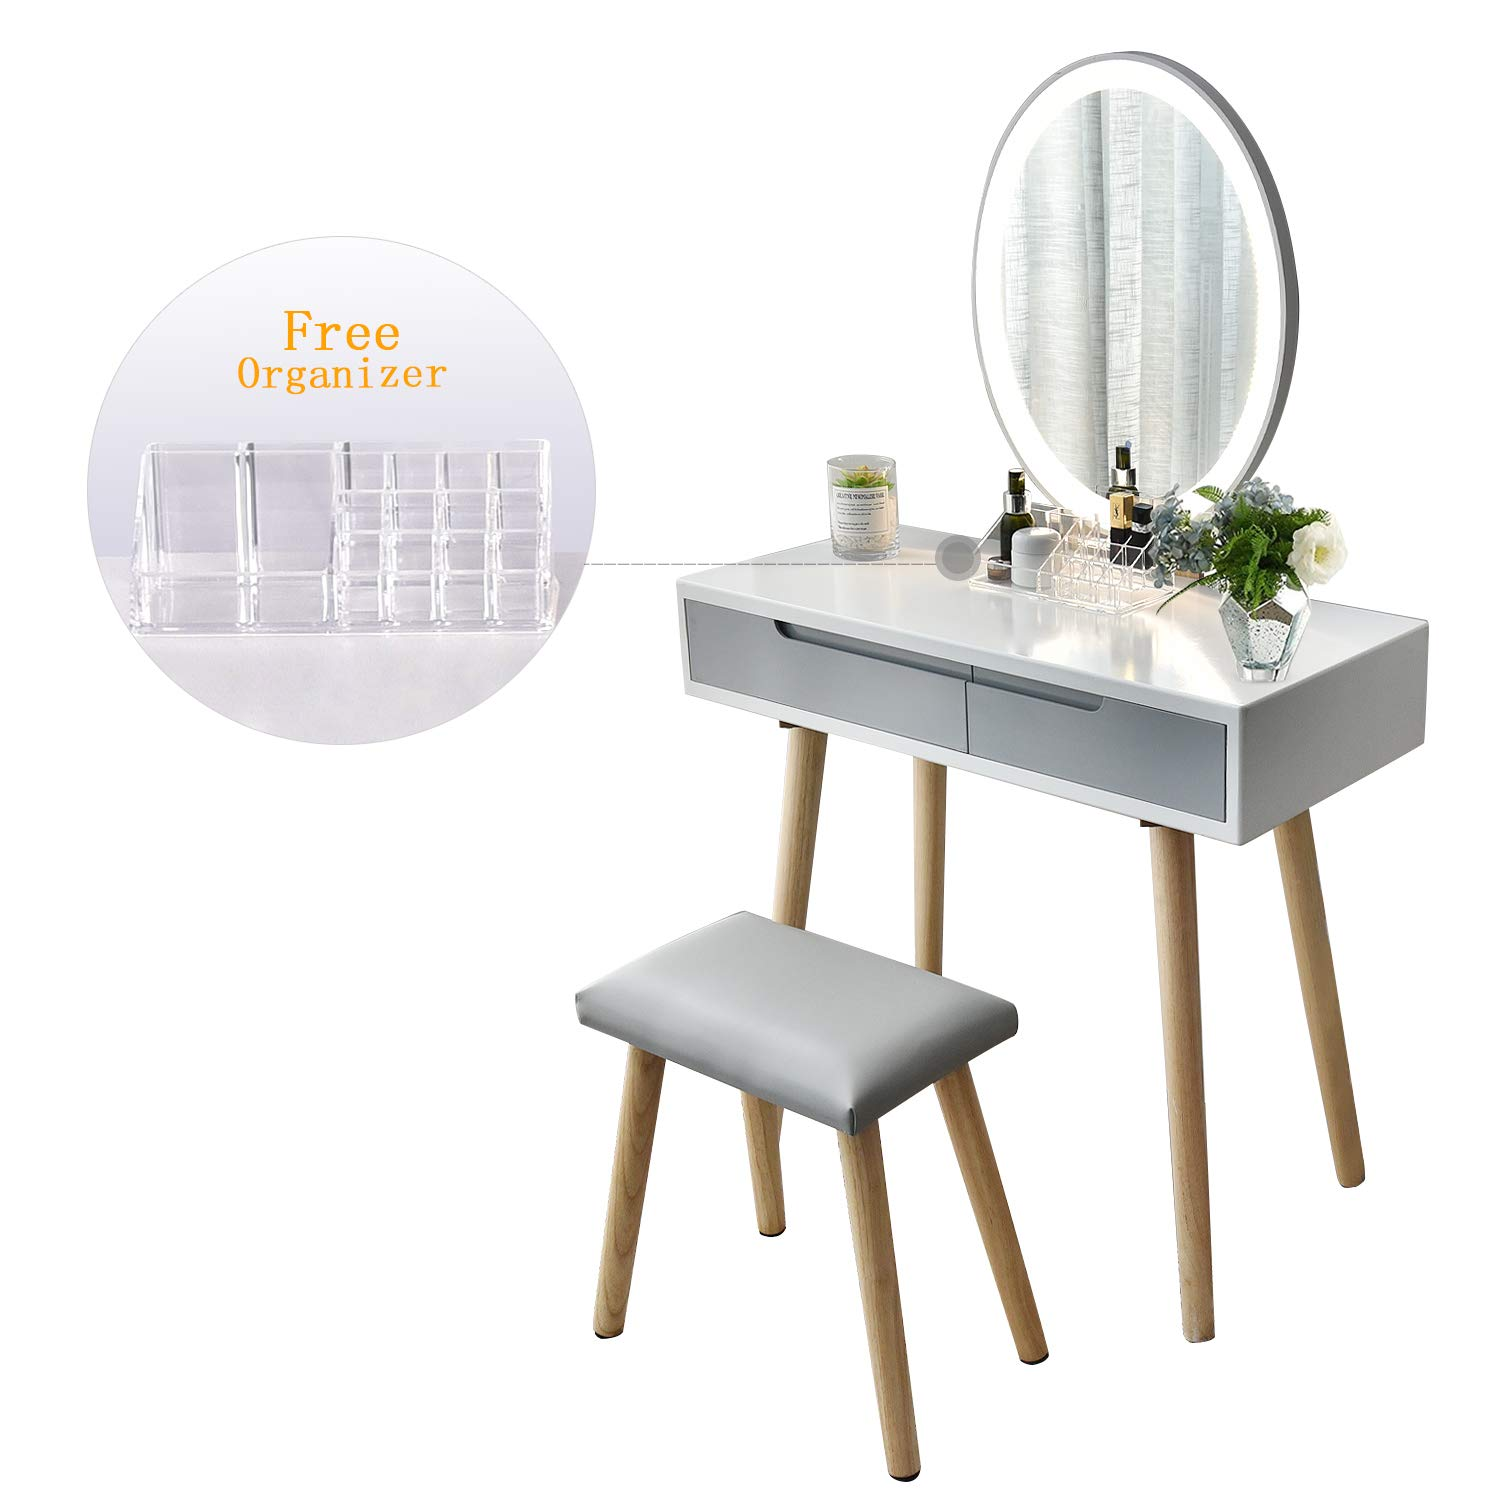 Vanity Table Set with Adjustable Brightness Mirror and Cushioned Stool, Dressing Table Vanity Makeup Table with Free Make-up Organizer by YOURLITEAMZ